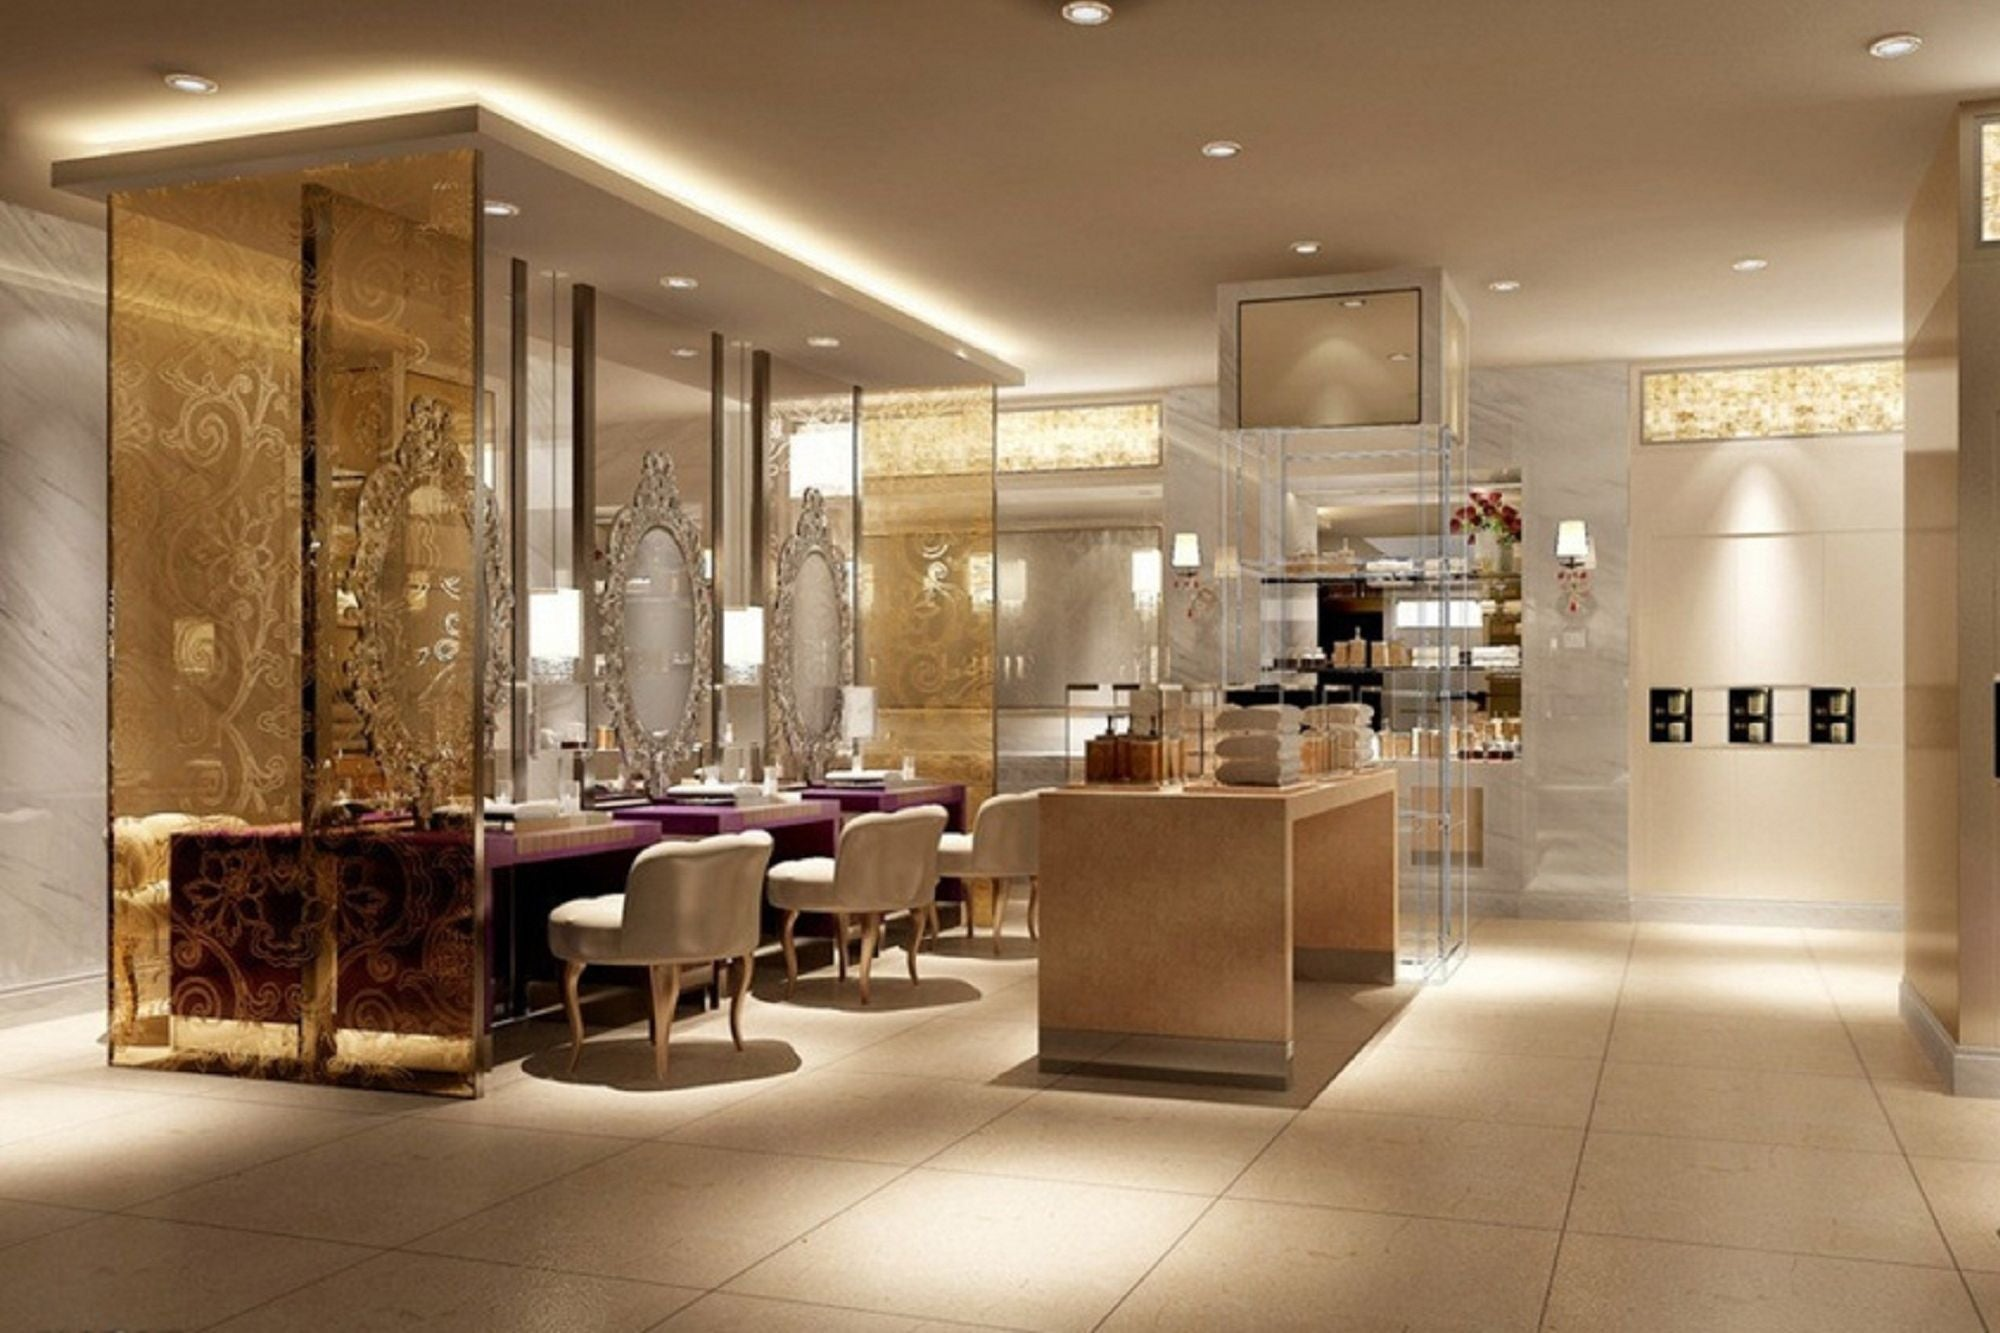 Delicieux Why Better Interior Attracts More Customers In Beauty Business